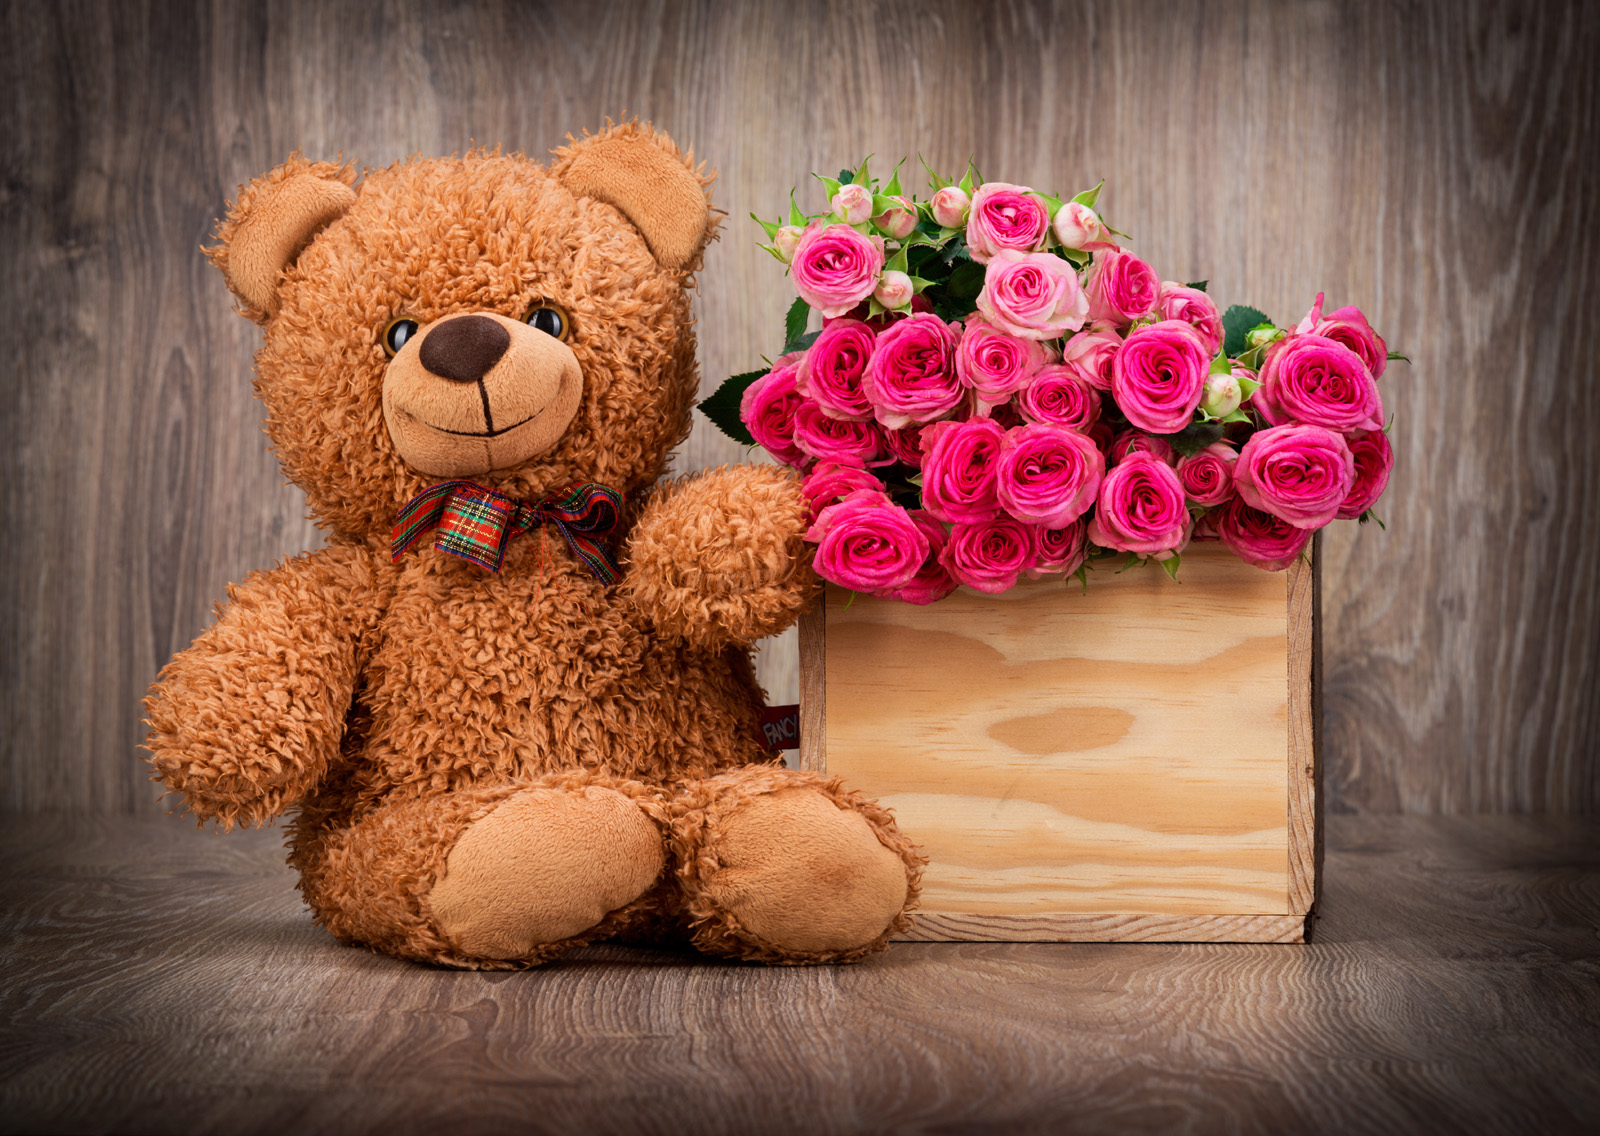 Teddy bear and flowers in baskets 51433